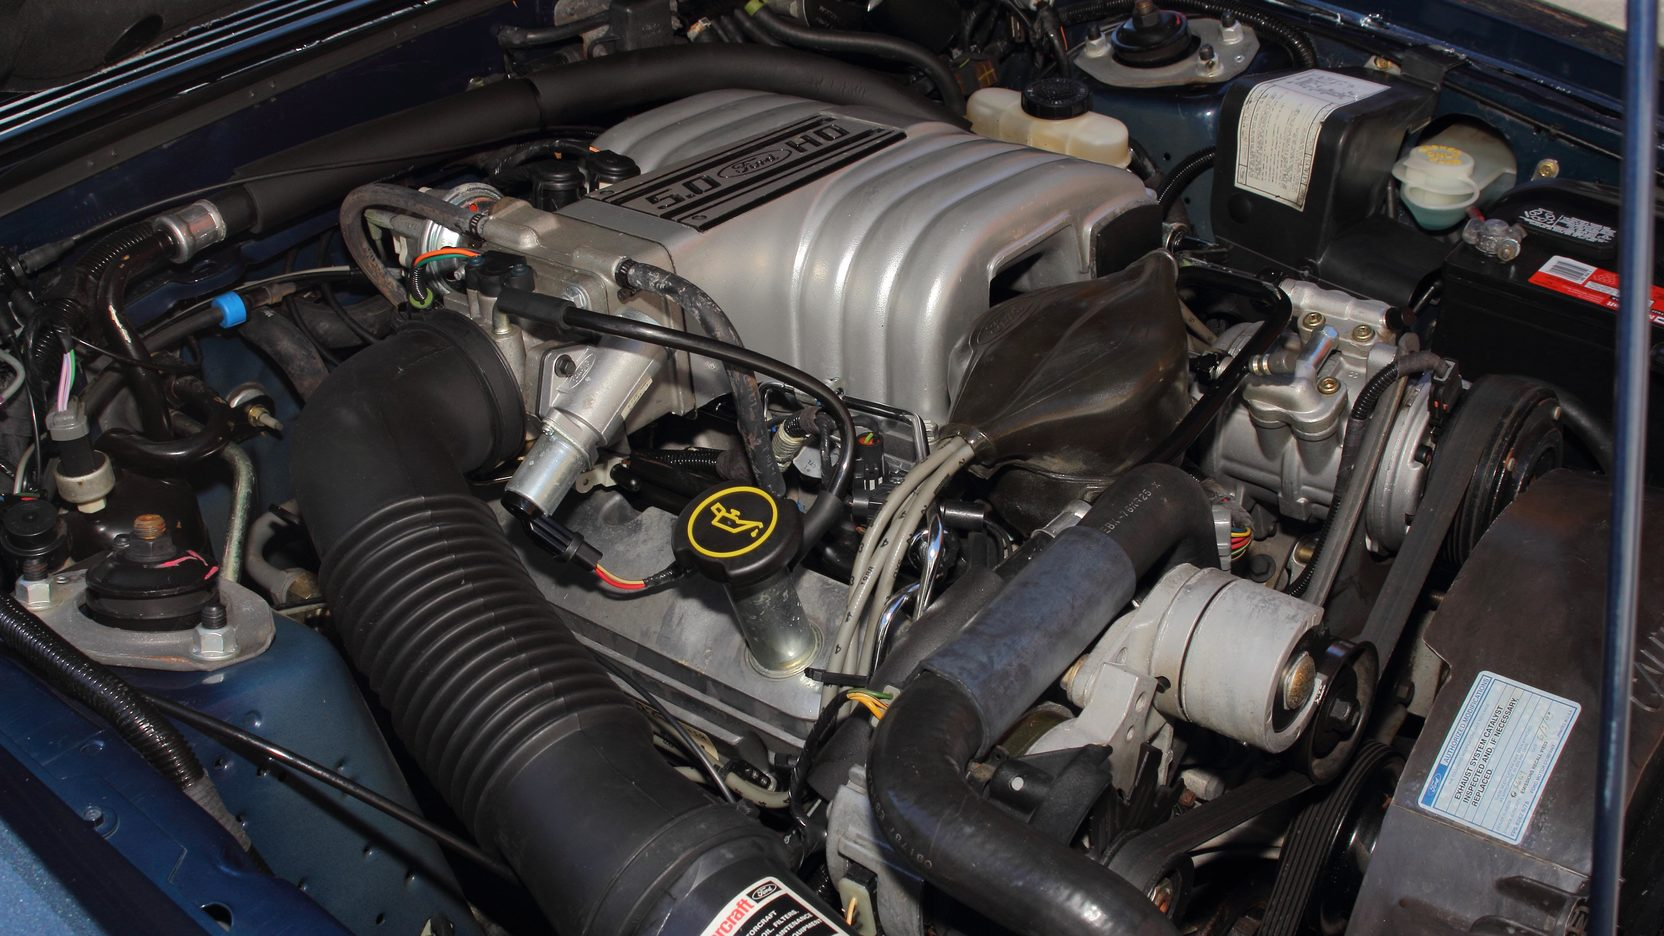 1988 Ford Mustang GT 5.0 engine